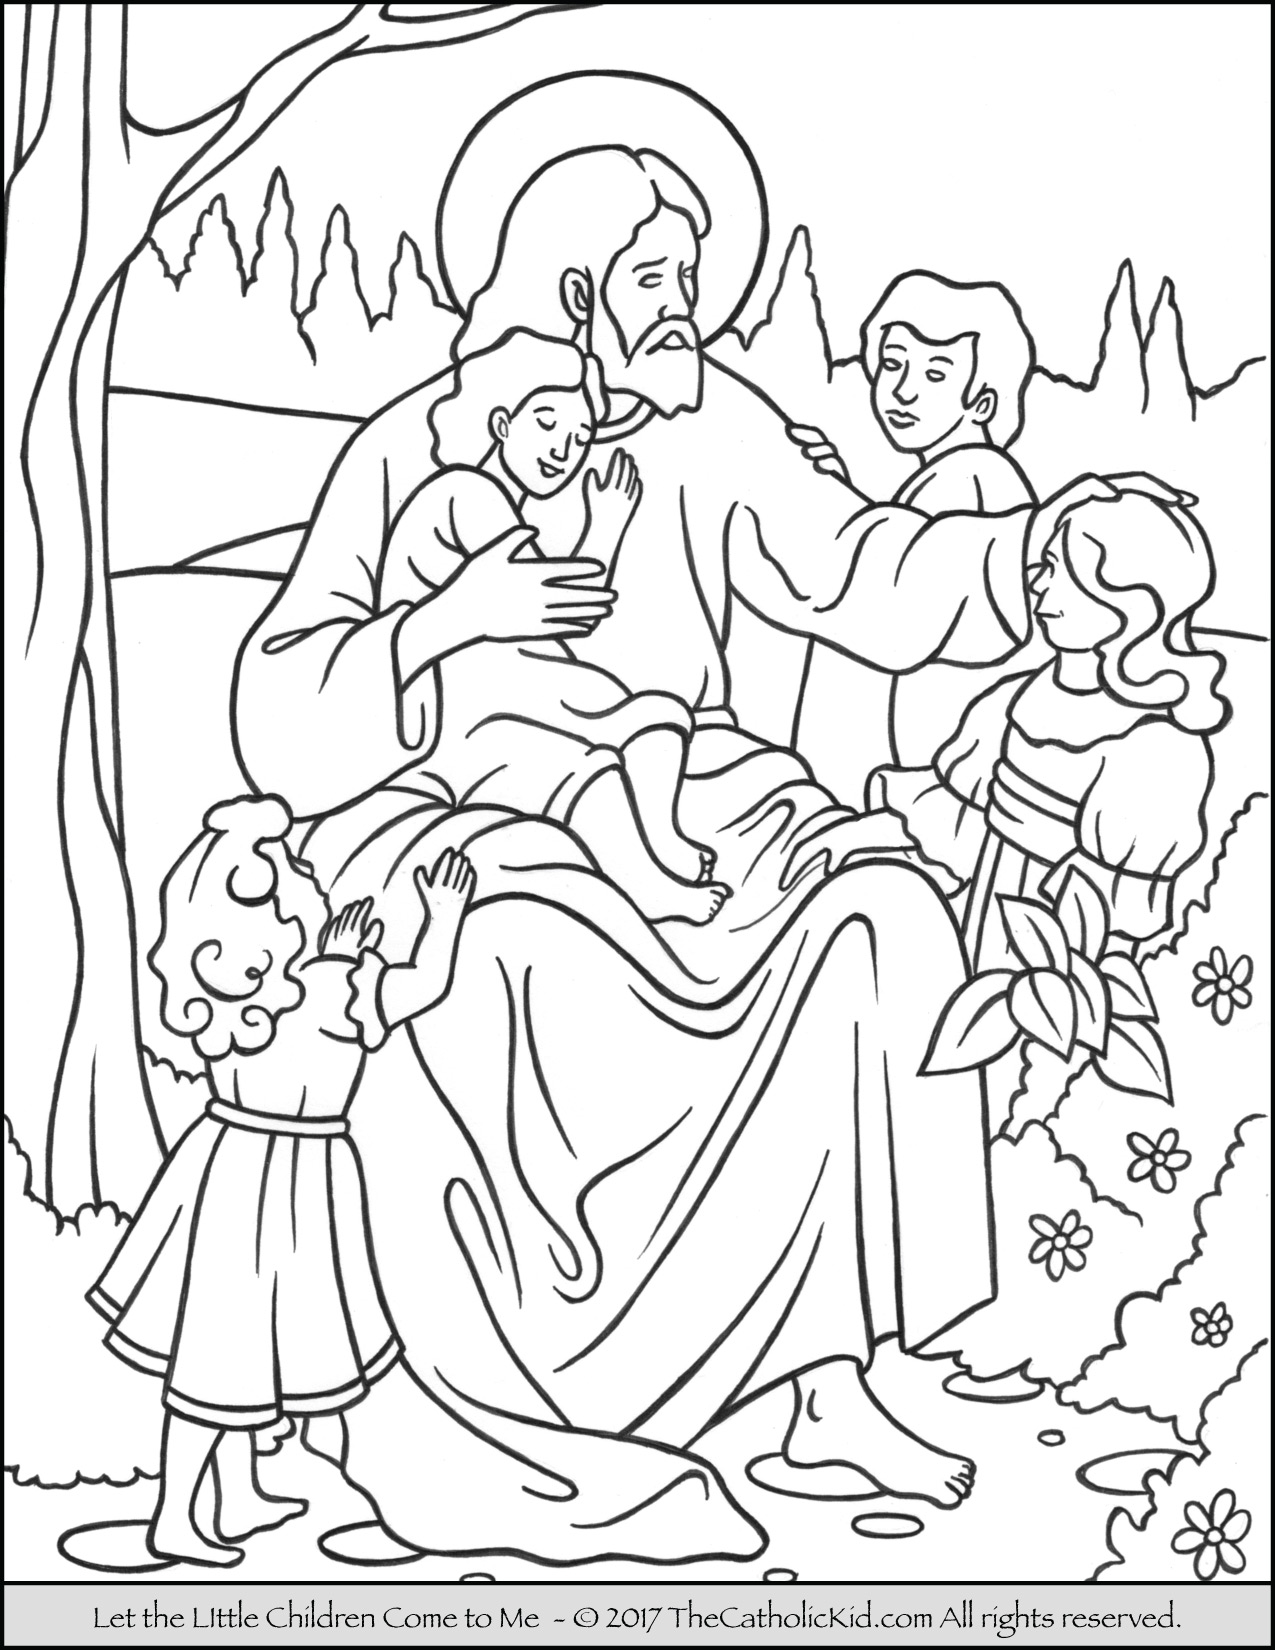 jesus coloring sheets jesus coloring pages by topcoloringpages on deviantart coloring jesus sheets